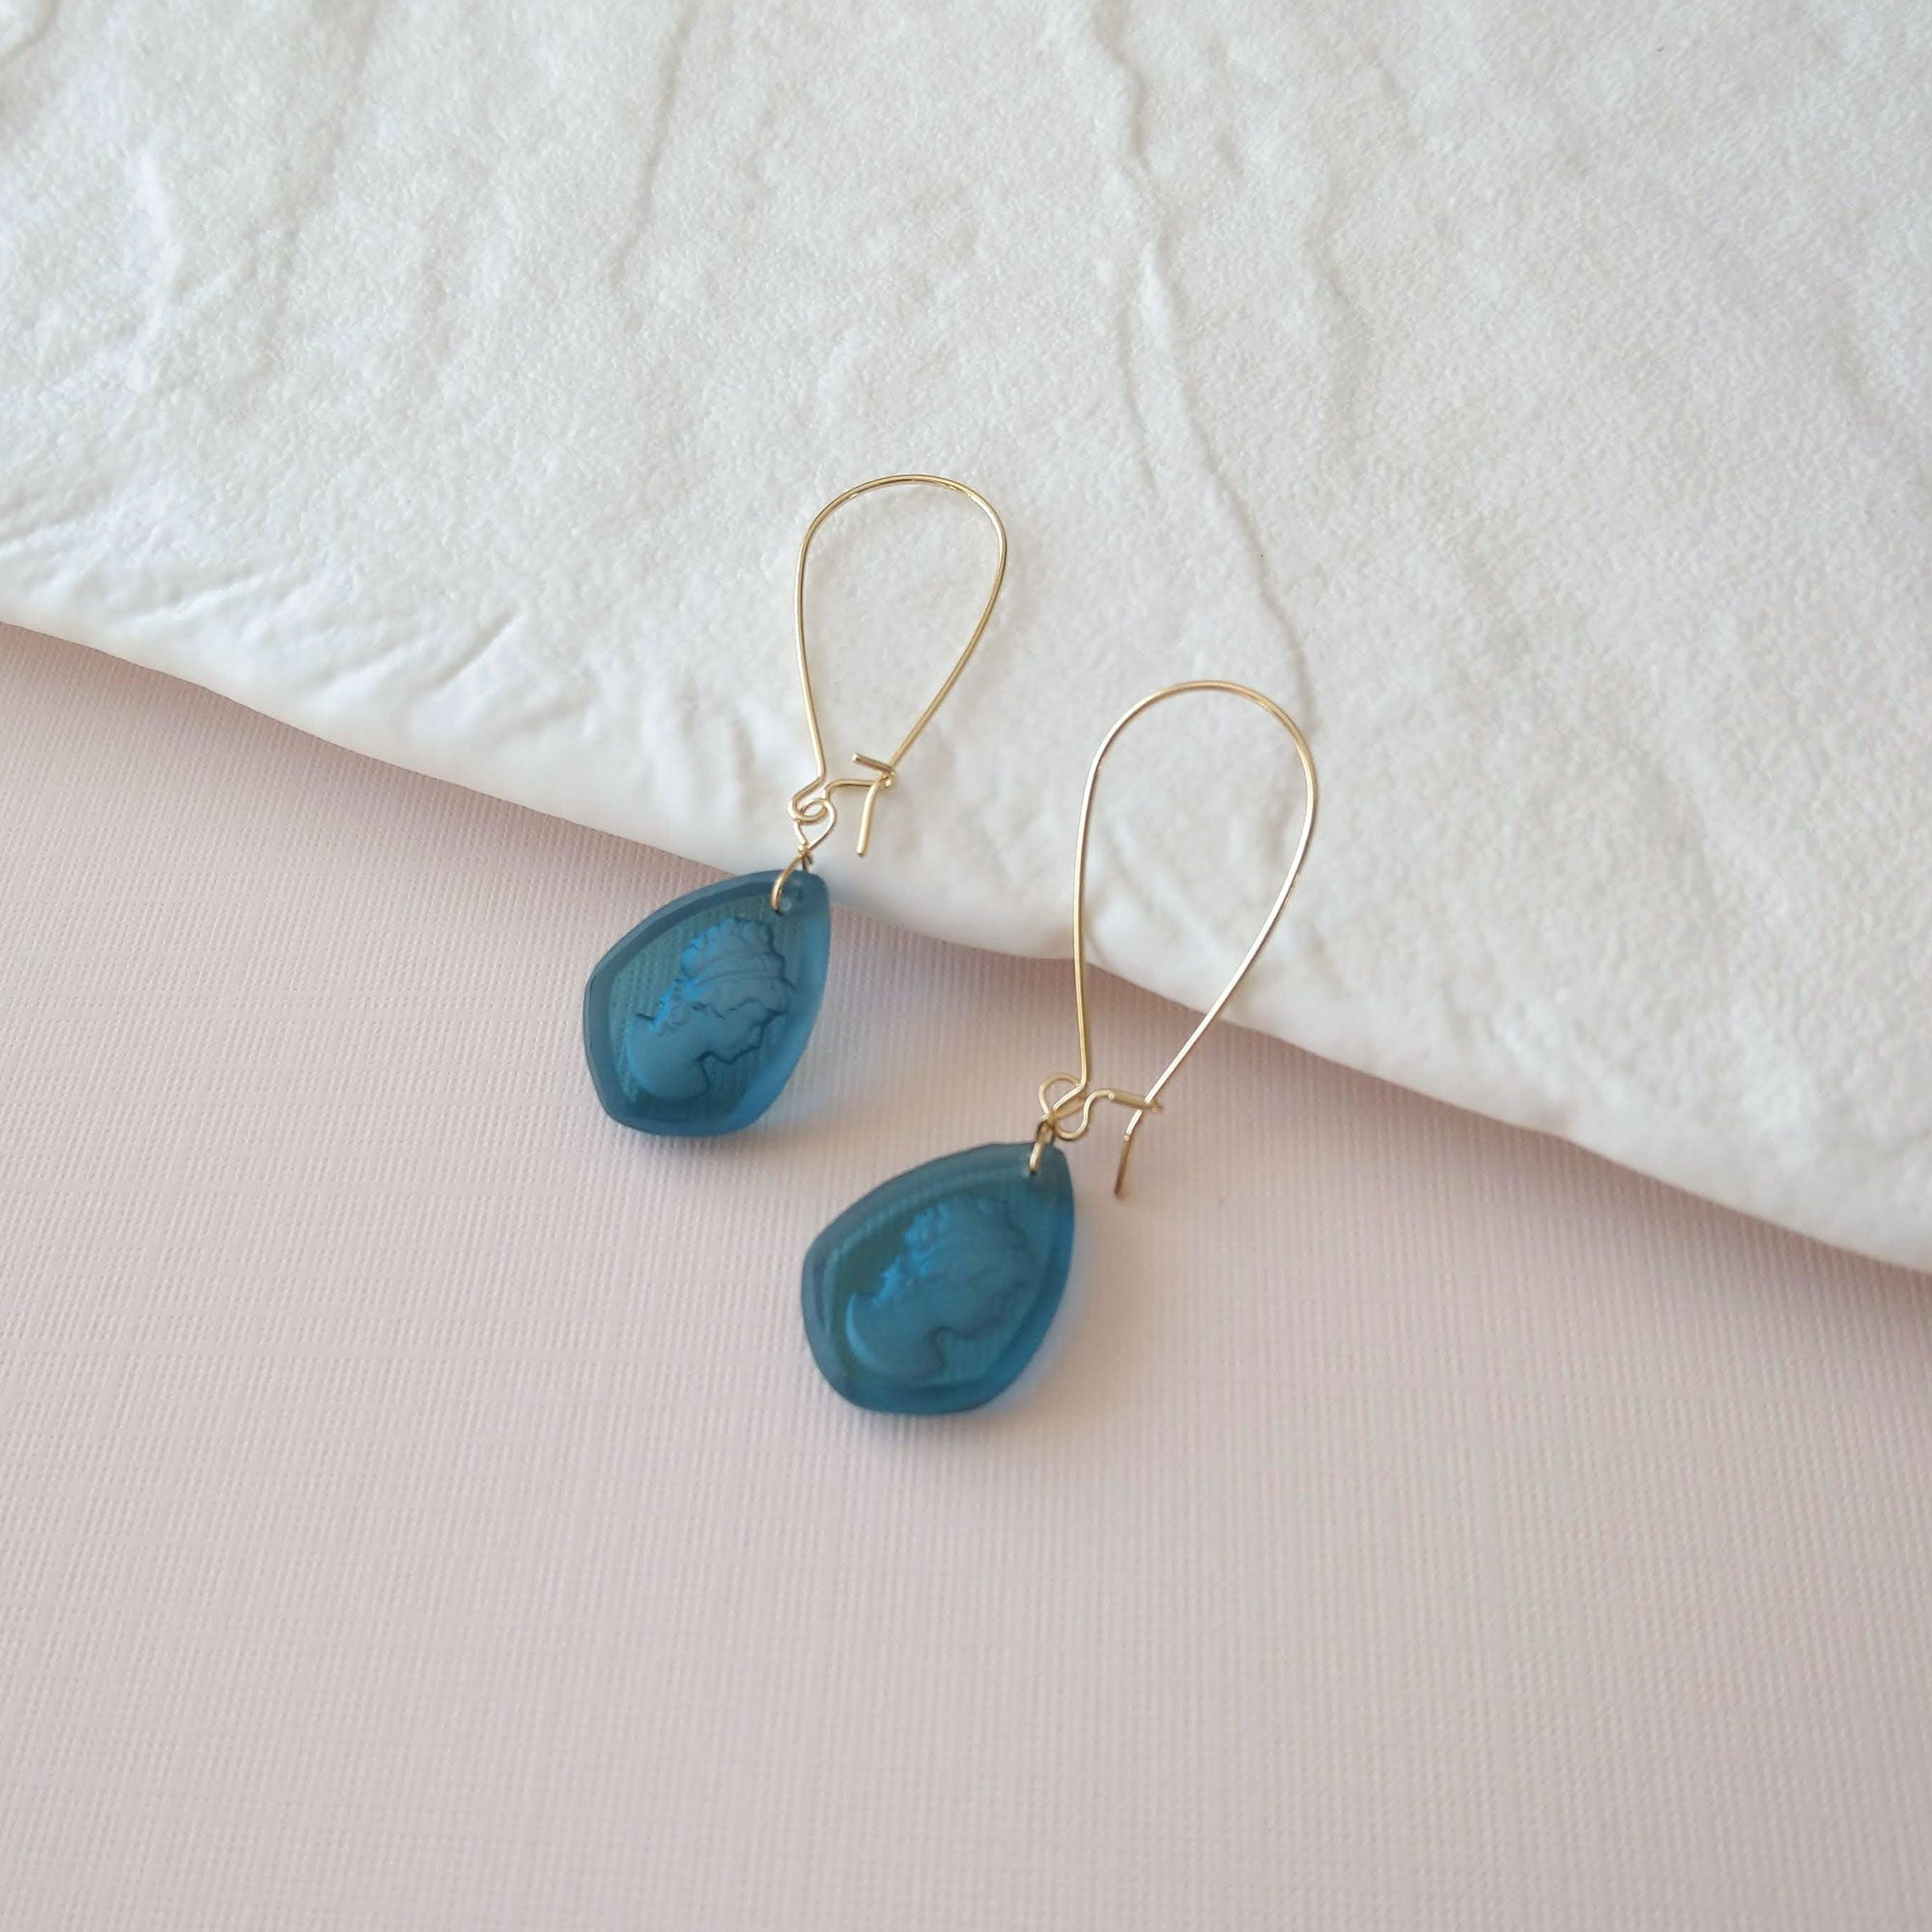 Soto II Earrings in teal (SD1569)